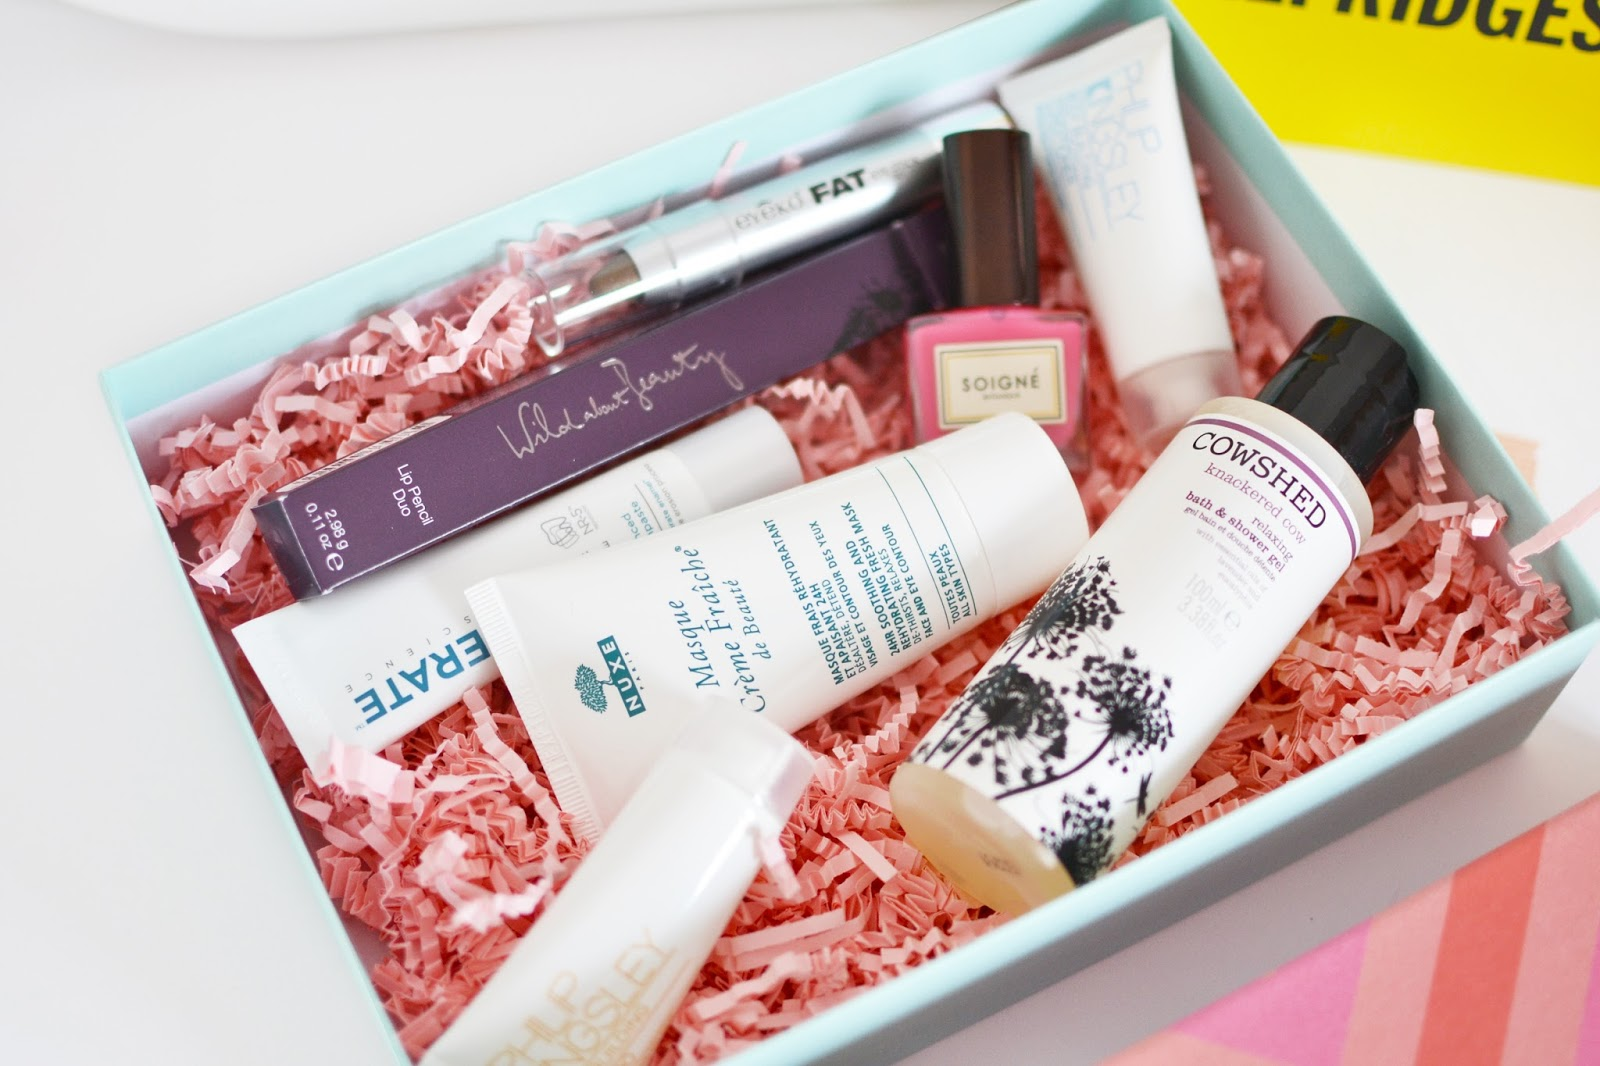 selfridges x birchbox collaboration